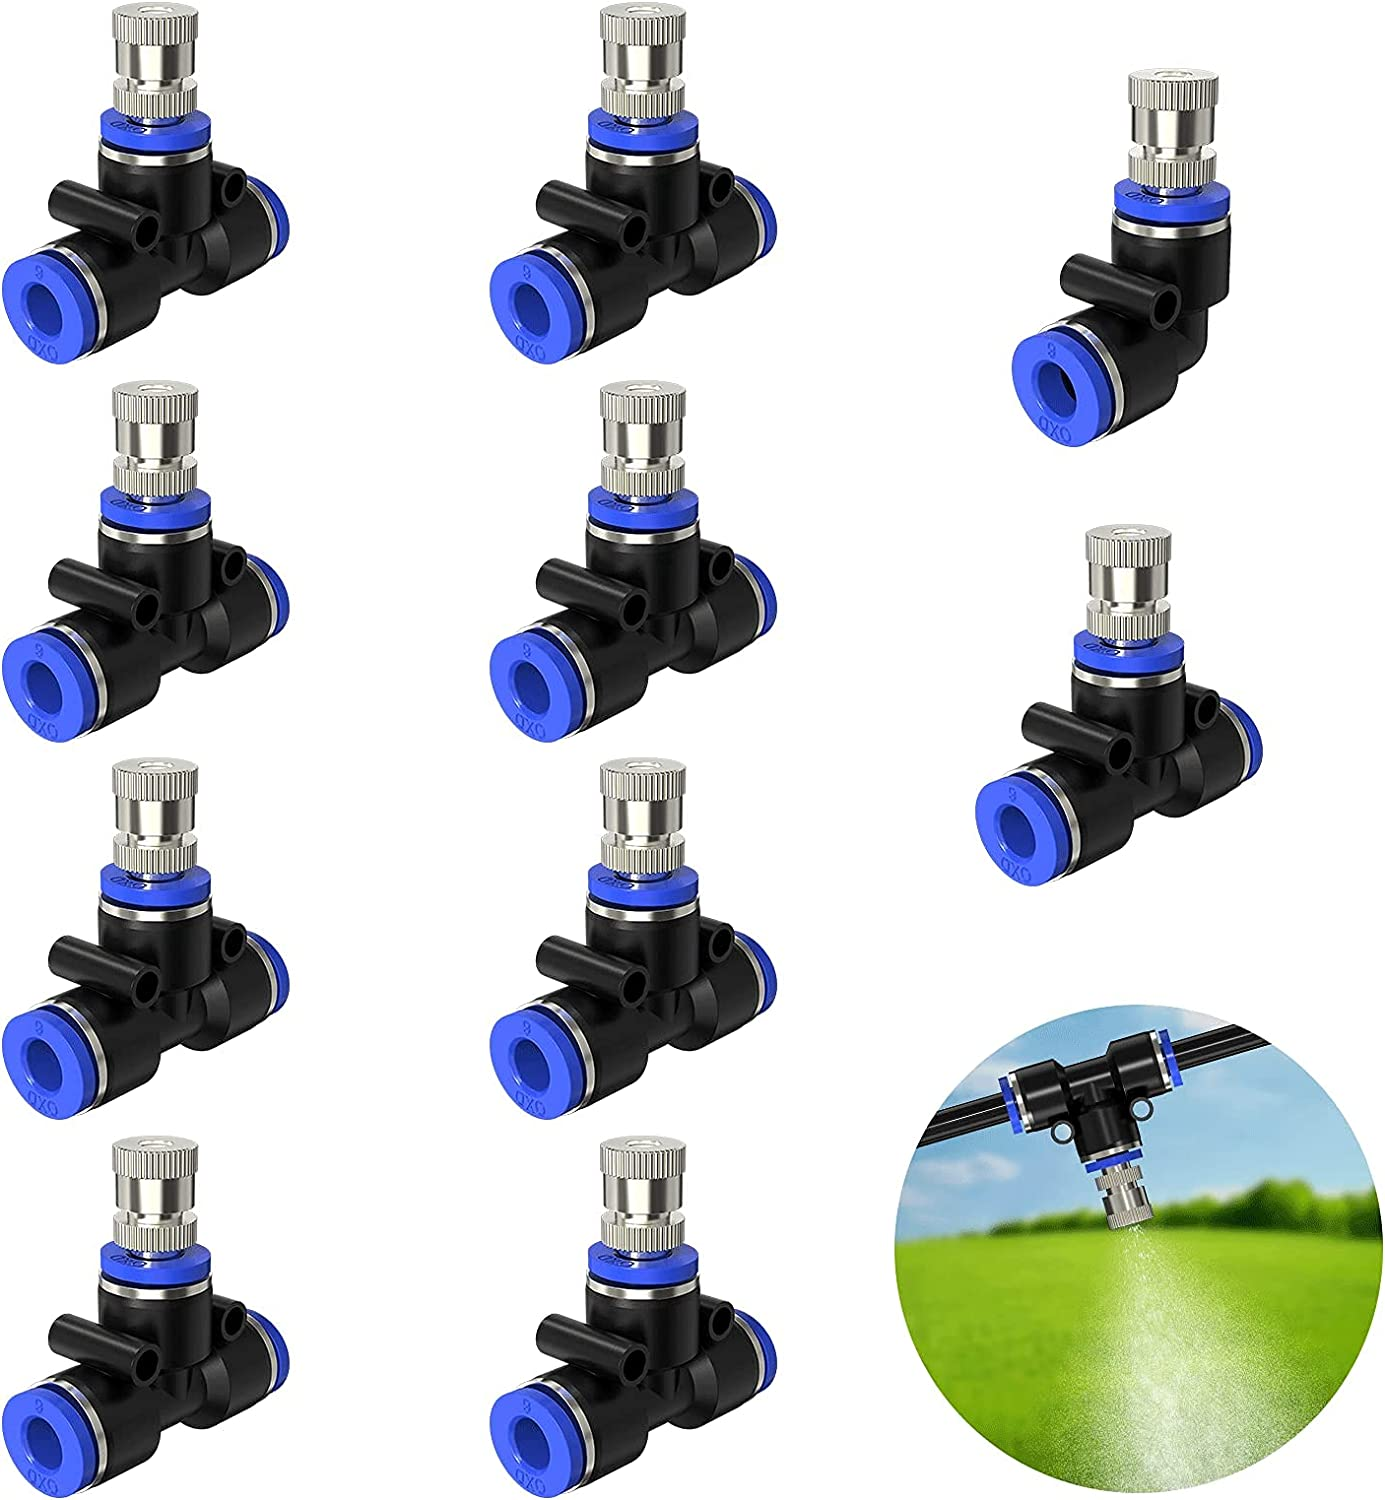 """REDTRON 10PCS Misting Nozzles, Mist Nozzle Tees for 1/4"""" Tubing, 0.4mm Orifice Nozzle for Patio Garden Greenhouse Trampoline and Outdoor Cooling System"""